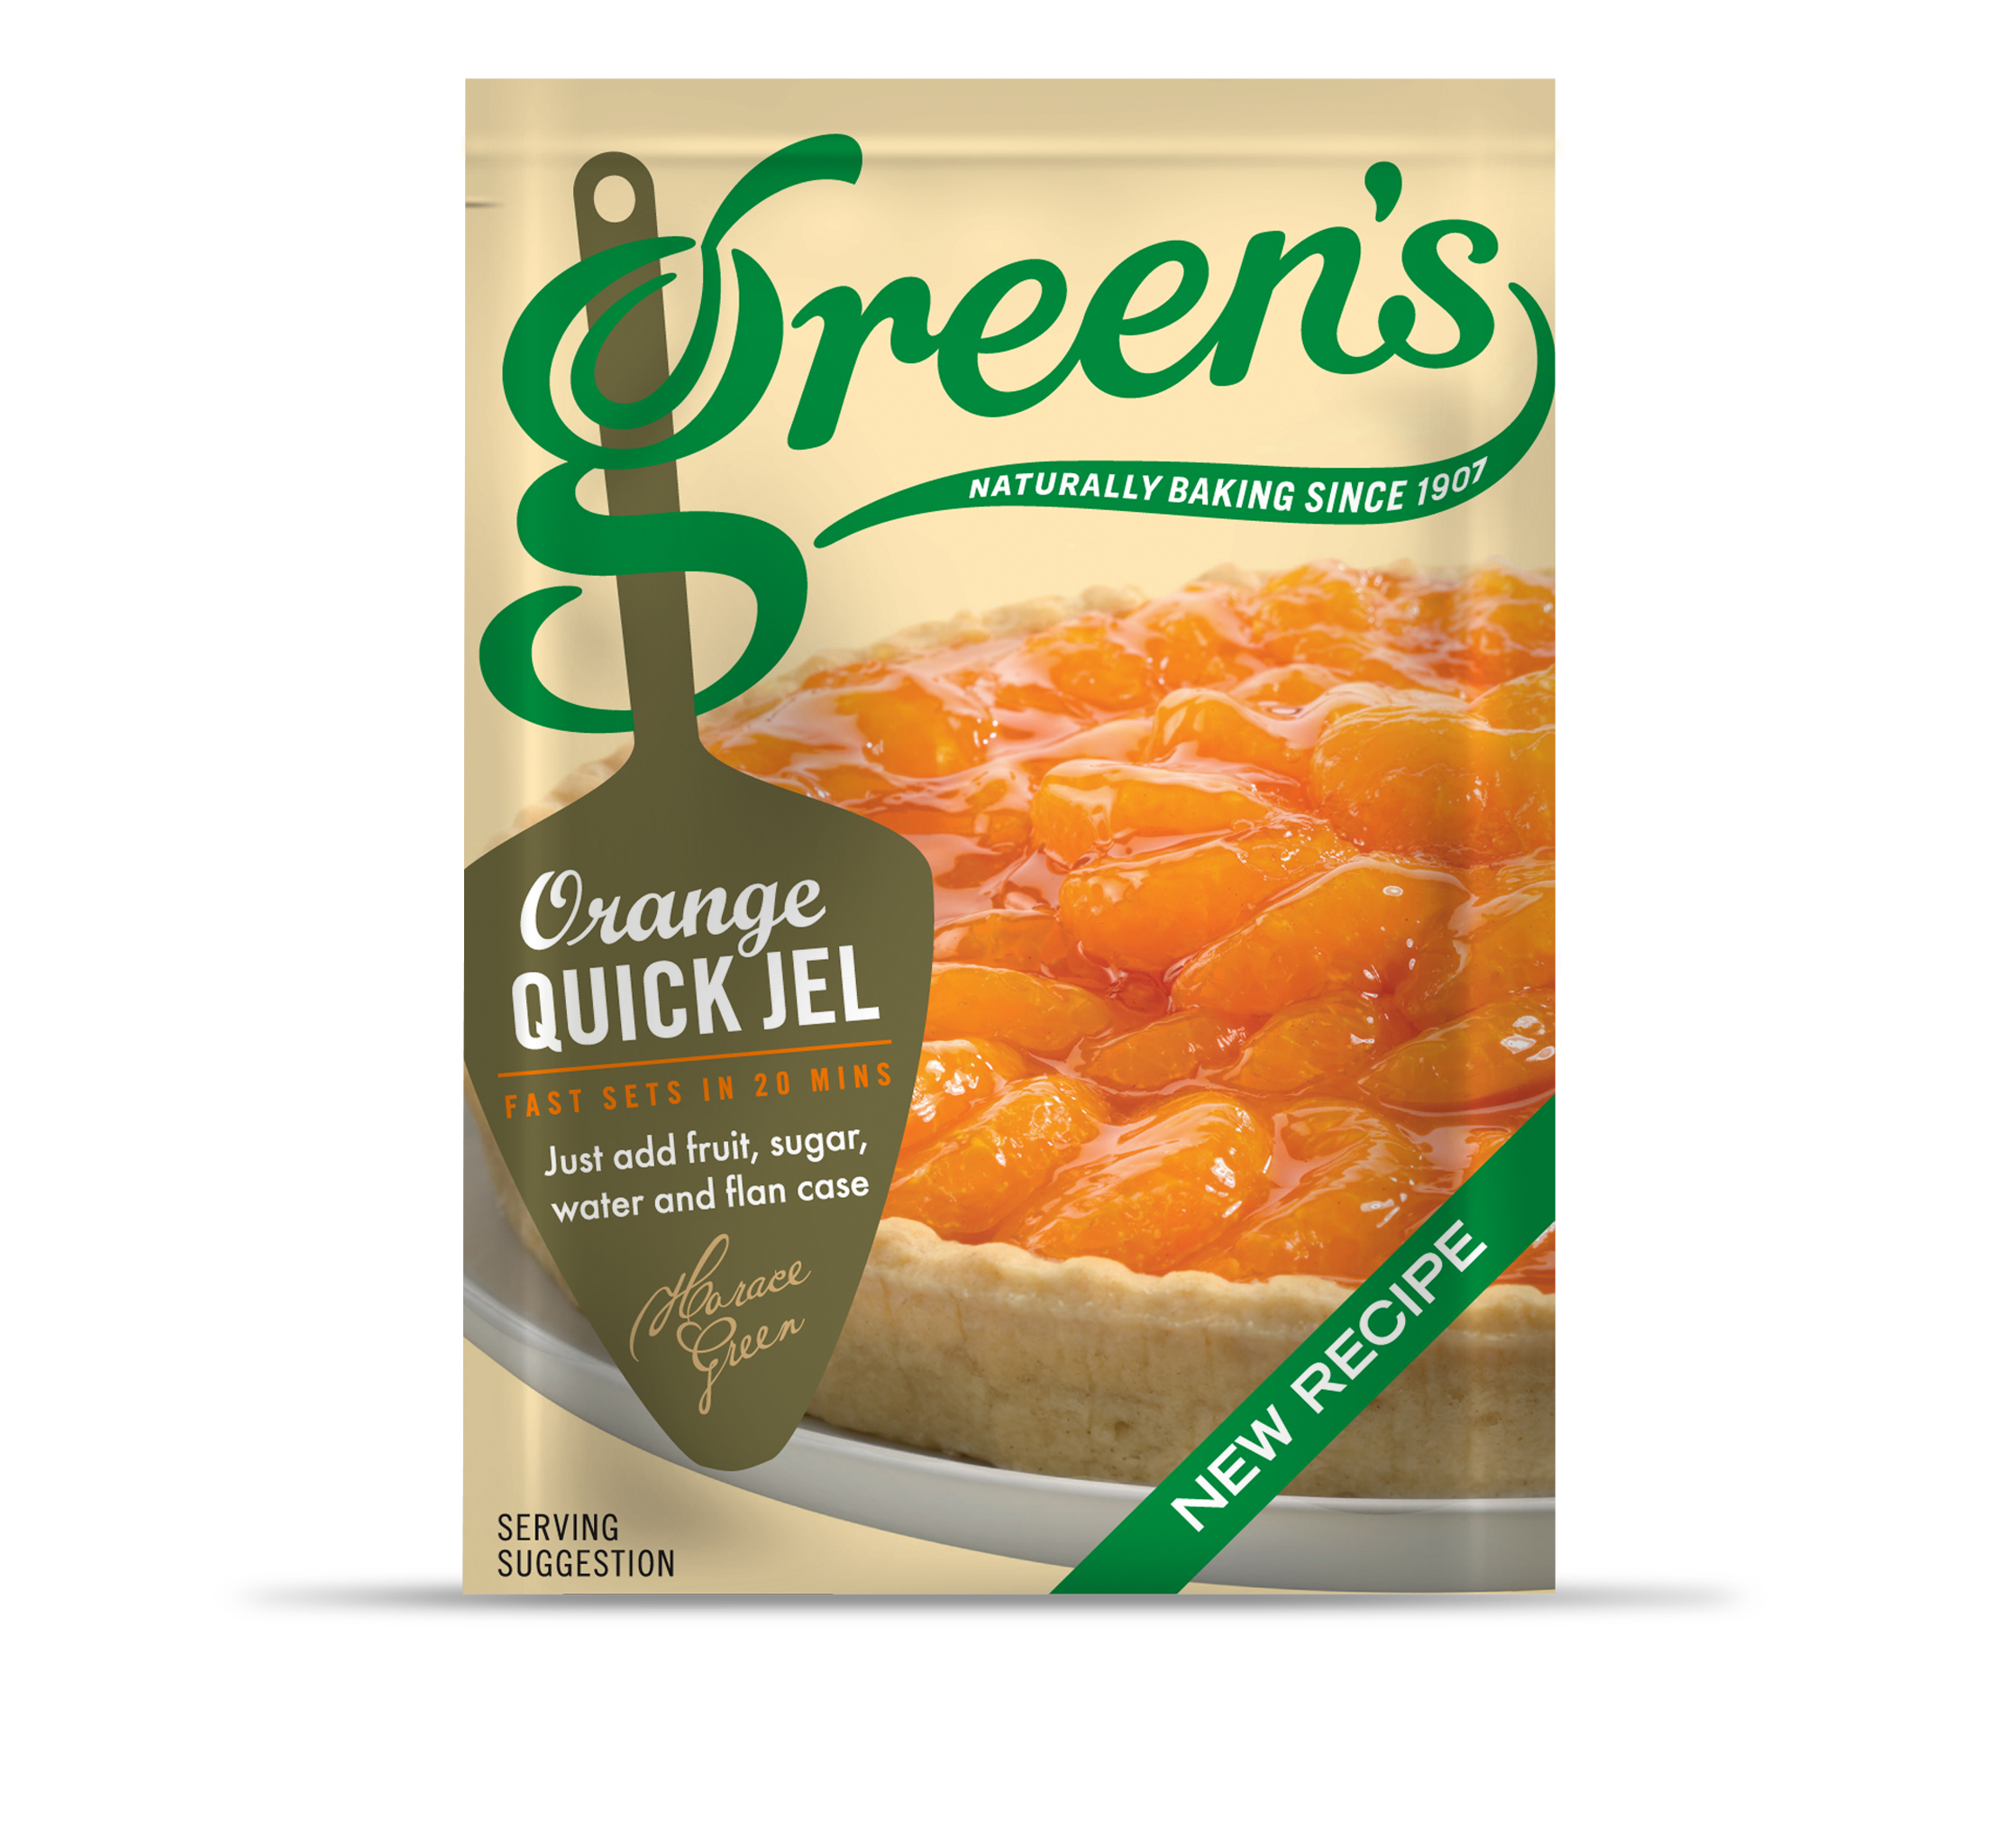 Greens Orange Quick Jel new recipe